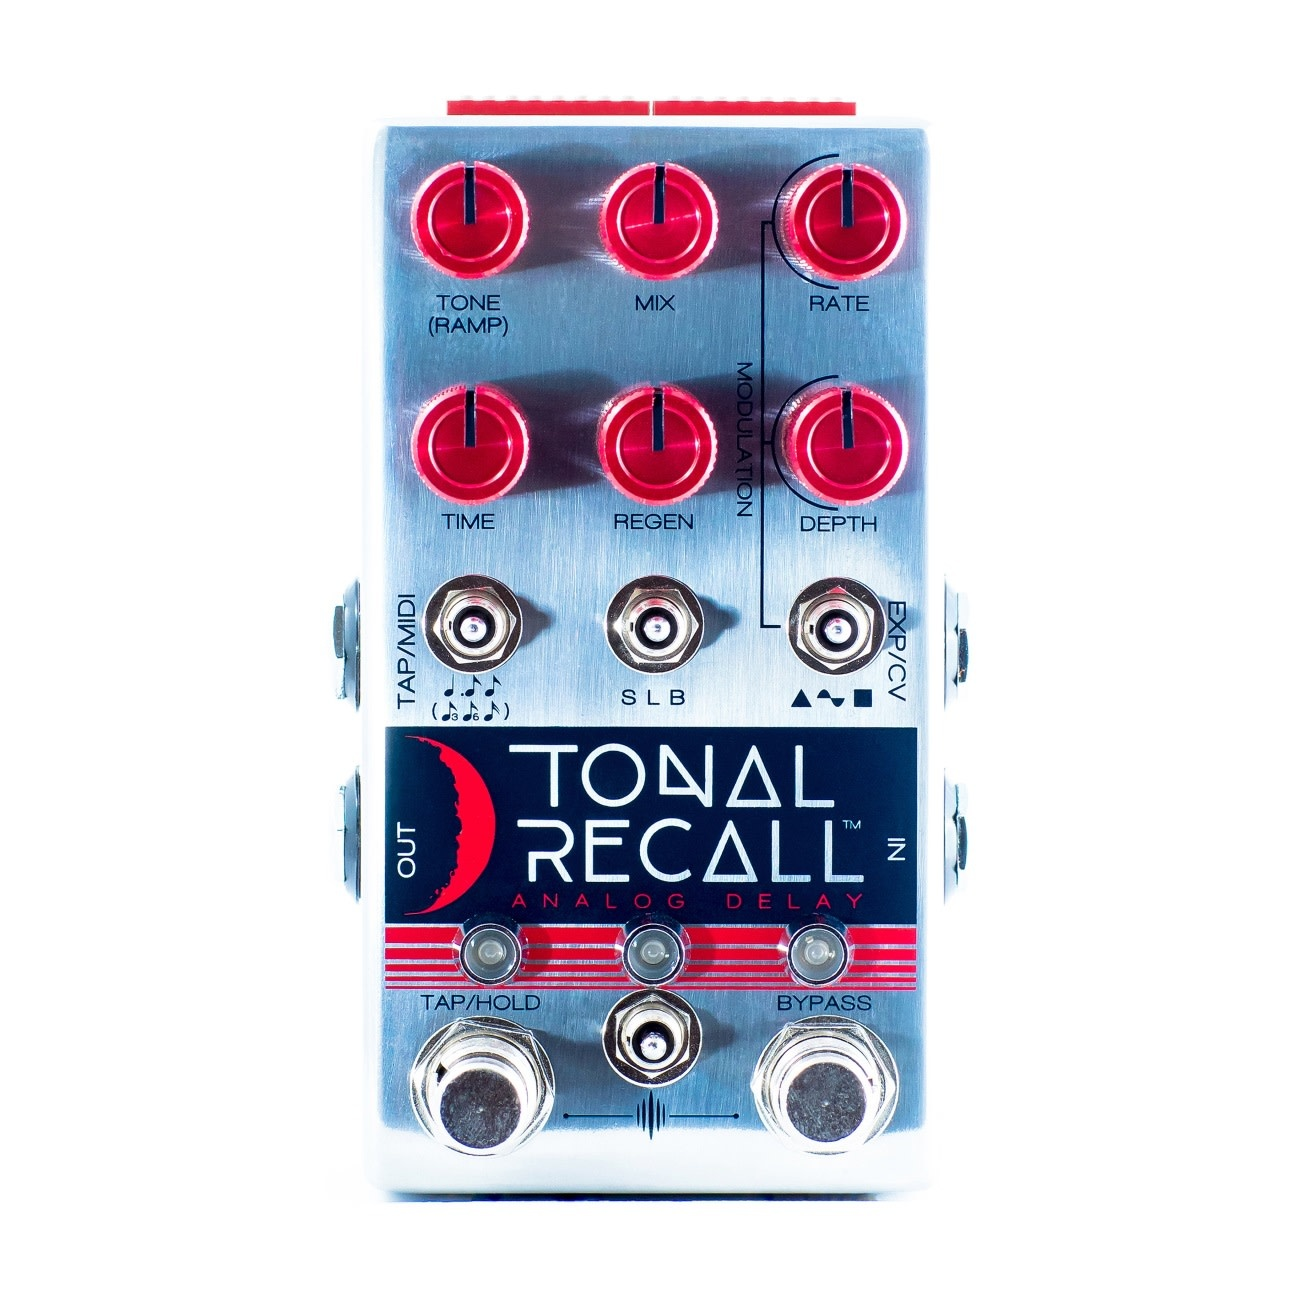 Chase Bliss NEW Chase Bliss Audio Tonal Recall Analog Delay - Red Knob Mod